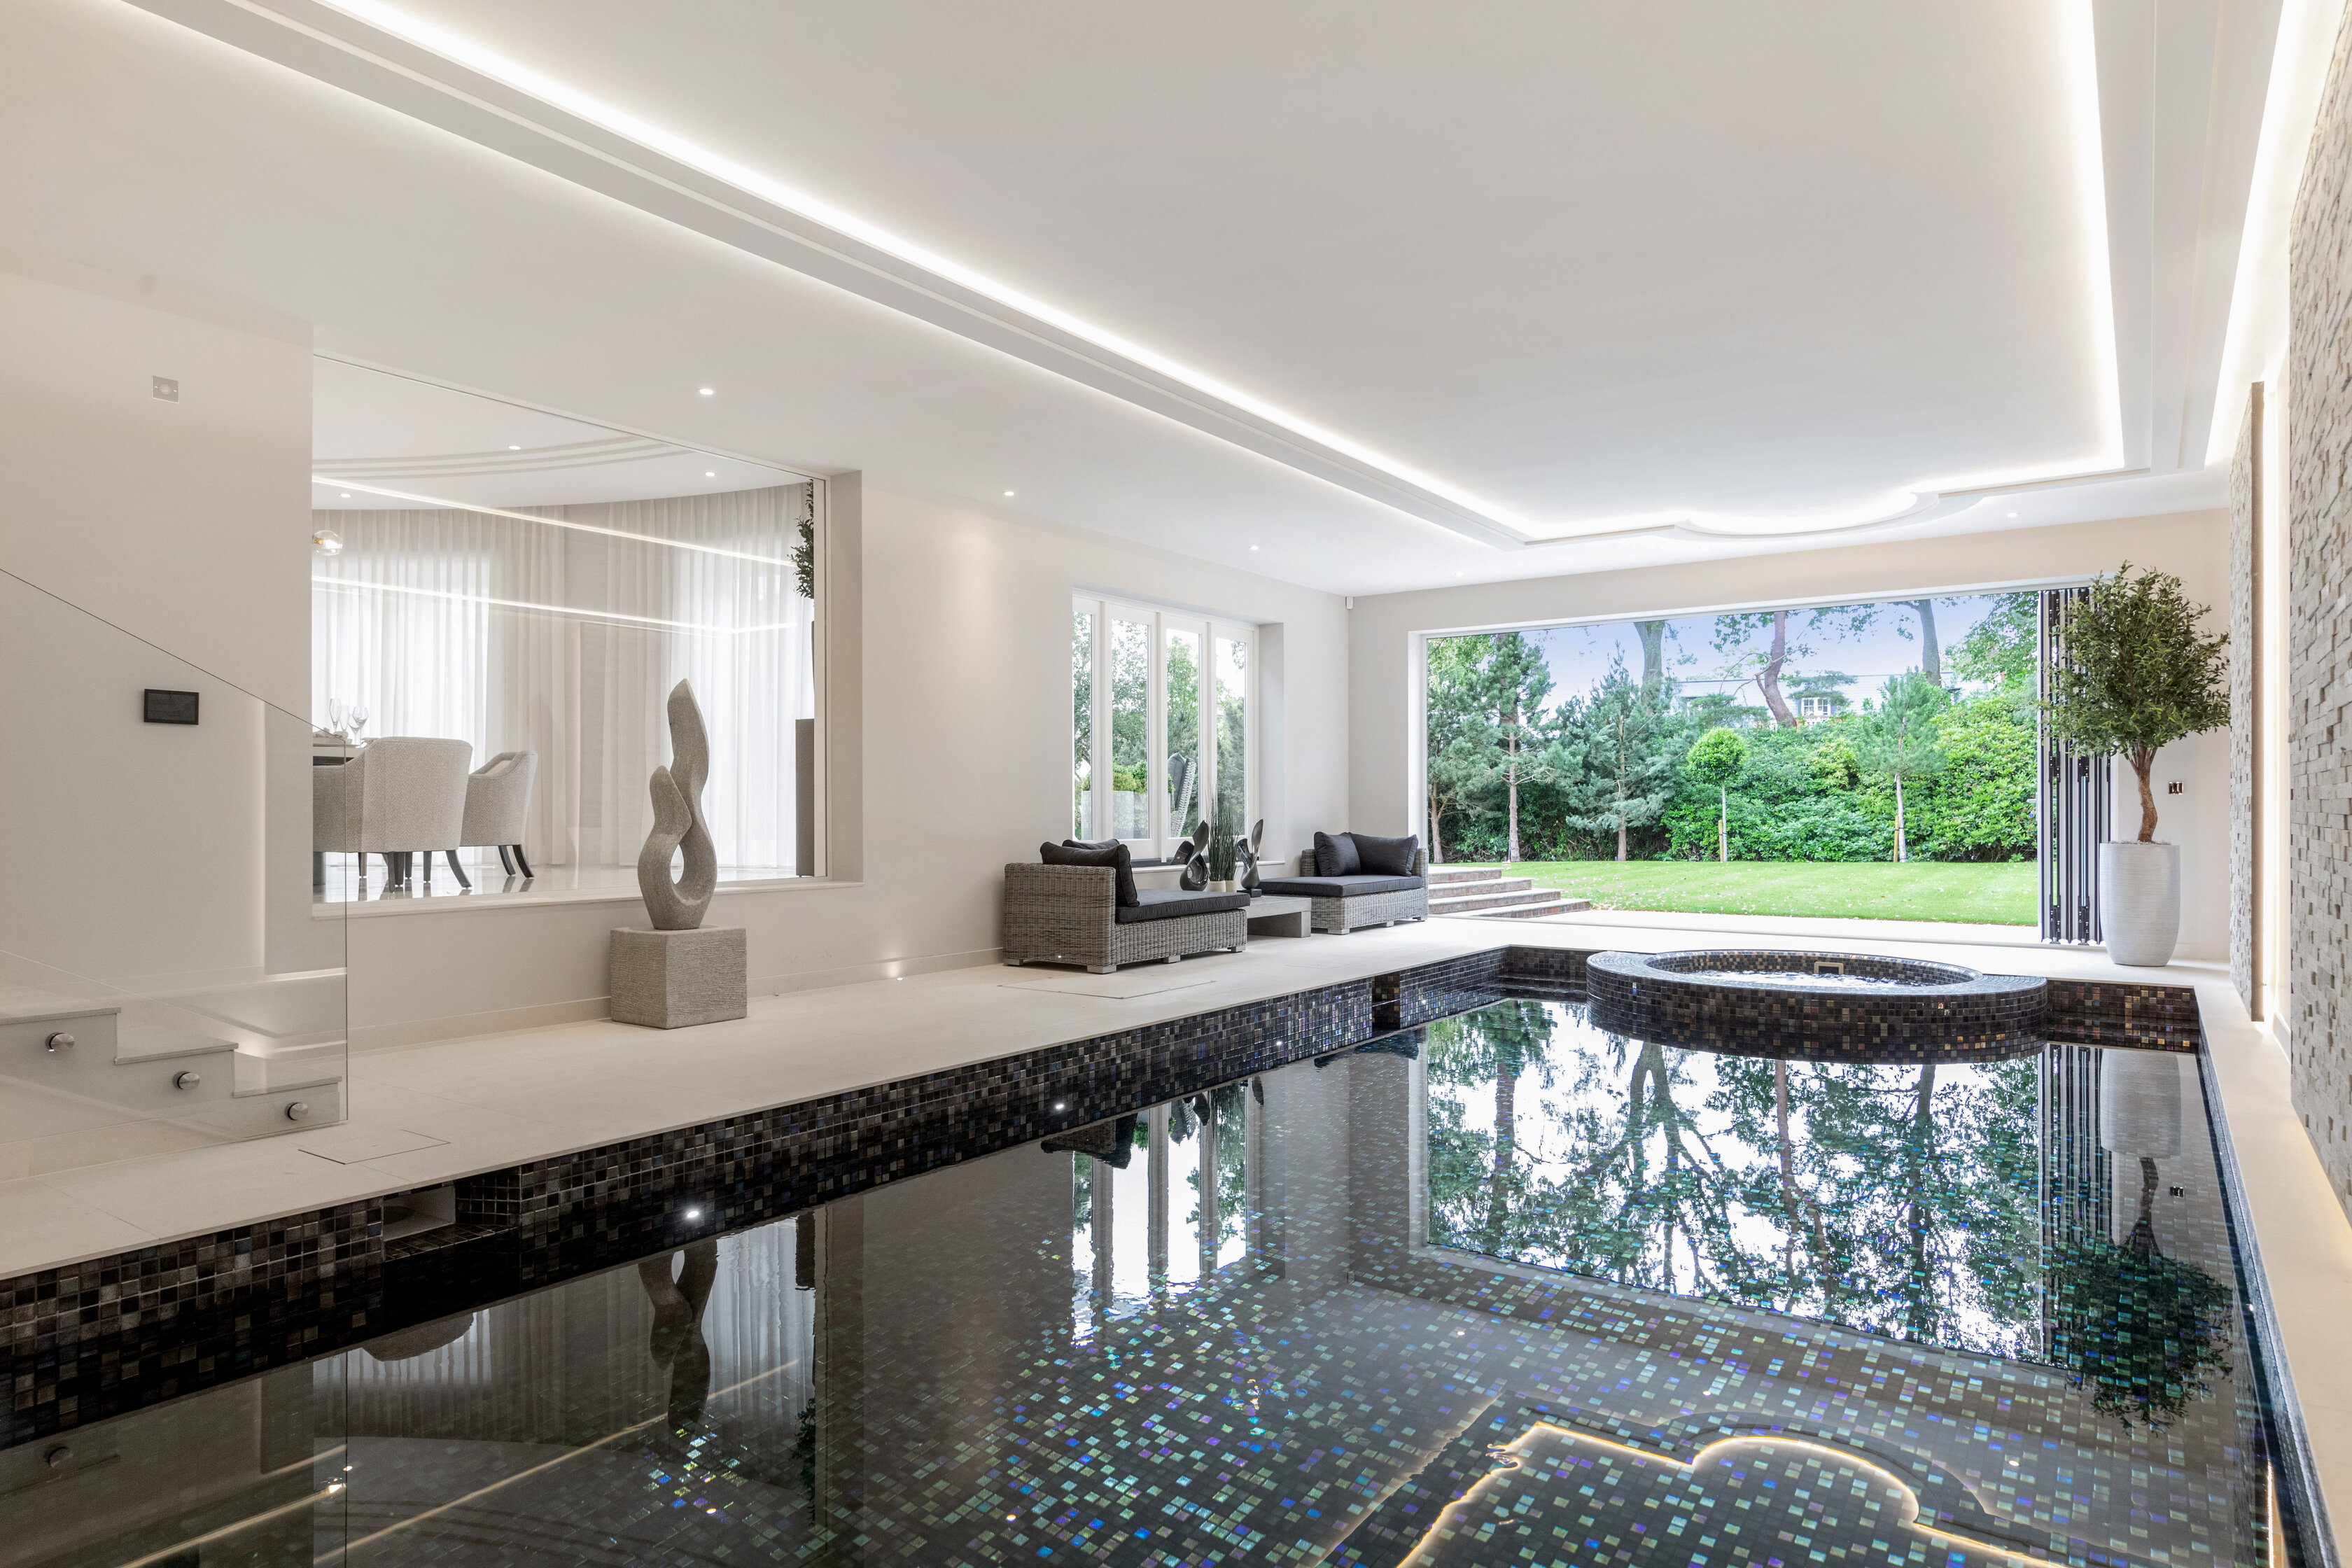 indoor luxurious pool opening onto the garden